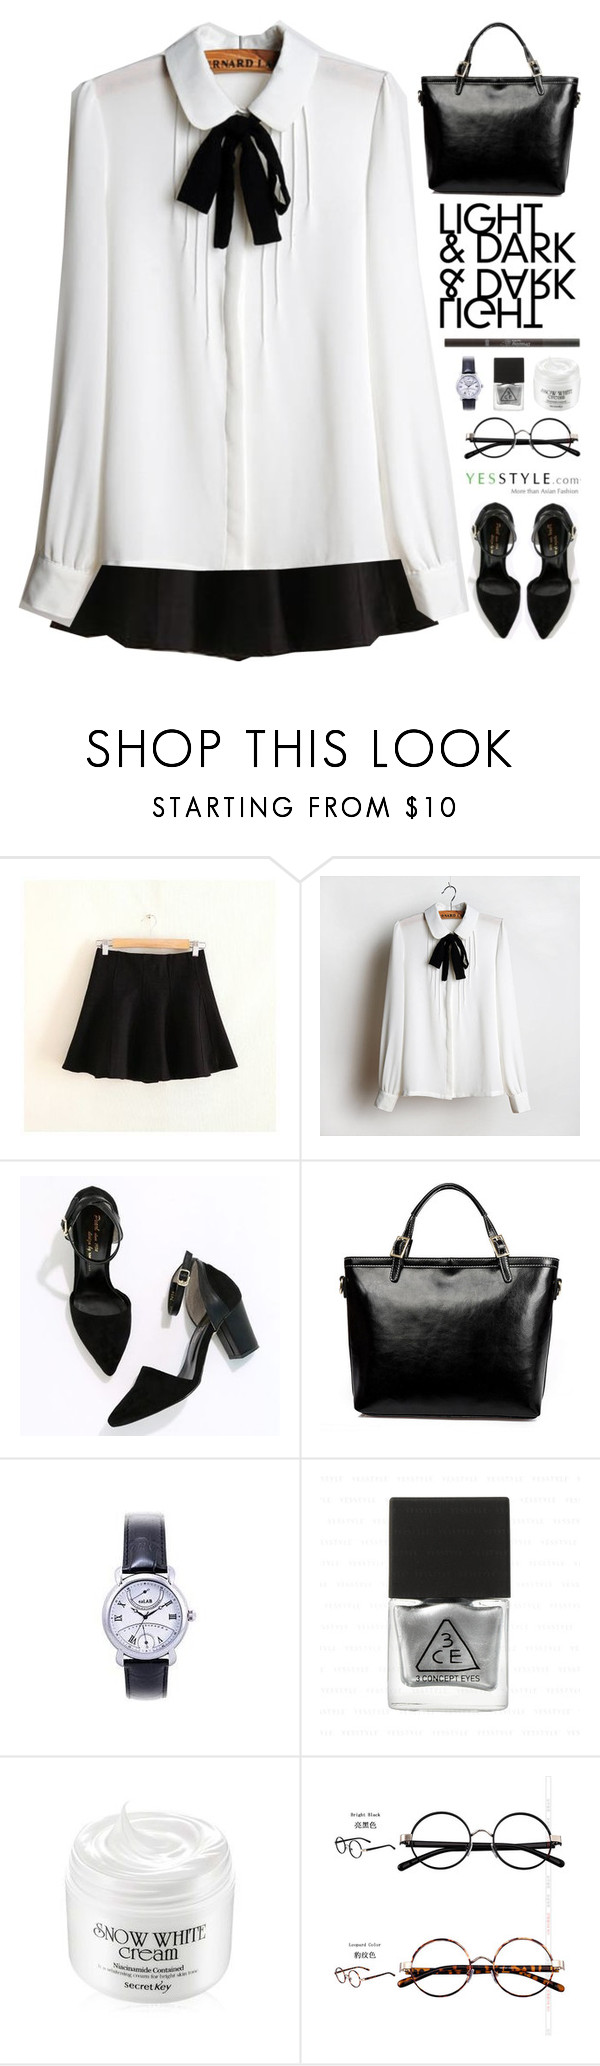 """""""YesStyle - Spring Fashion"""" by scarlett-morwenna ❤ liked on Polyvore featuring Waypoints, JVL, Cherryville, LineShow, GIMMAX Glasses, women's clothing, women, female, woman and misses"""